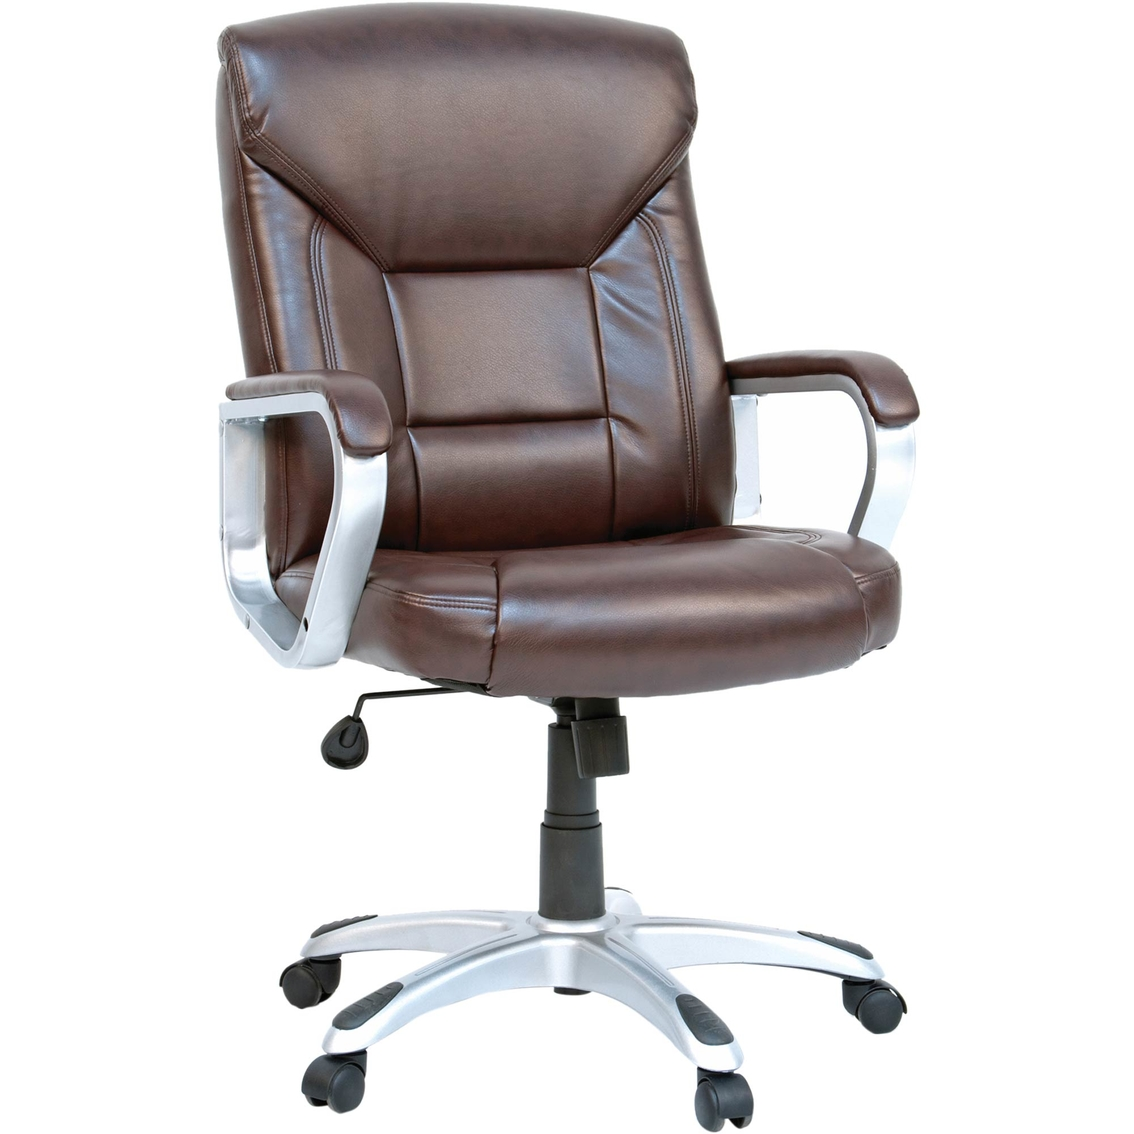 Sauder Deluxe Leather Executive Chair Office Chairs